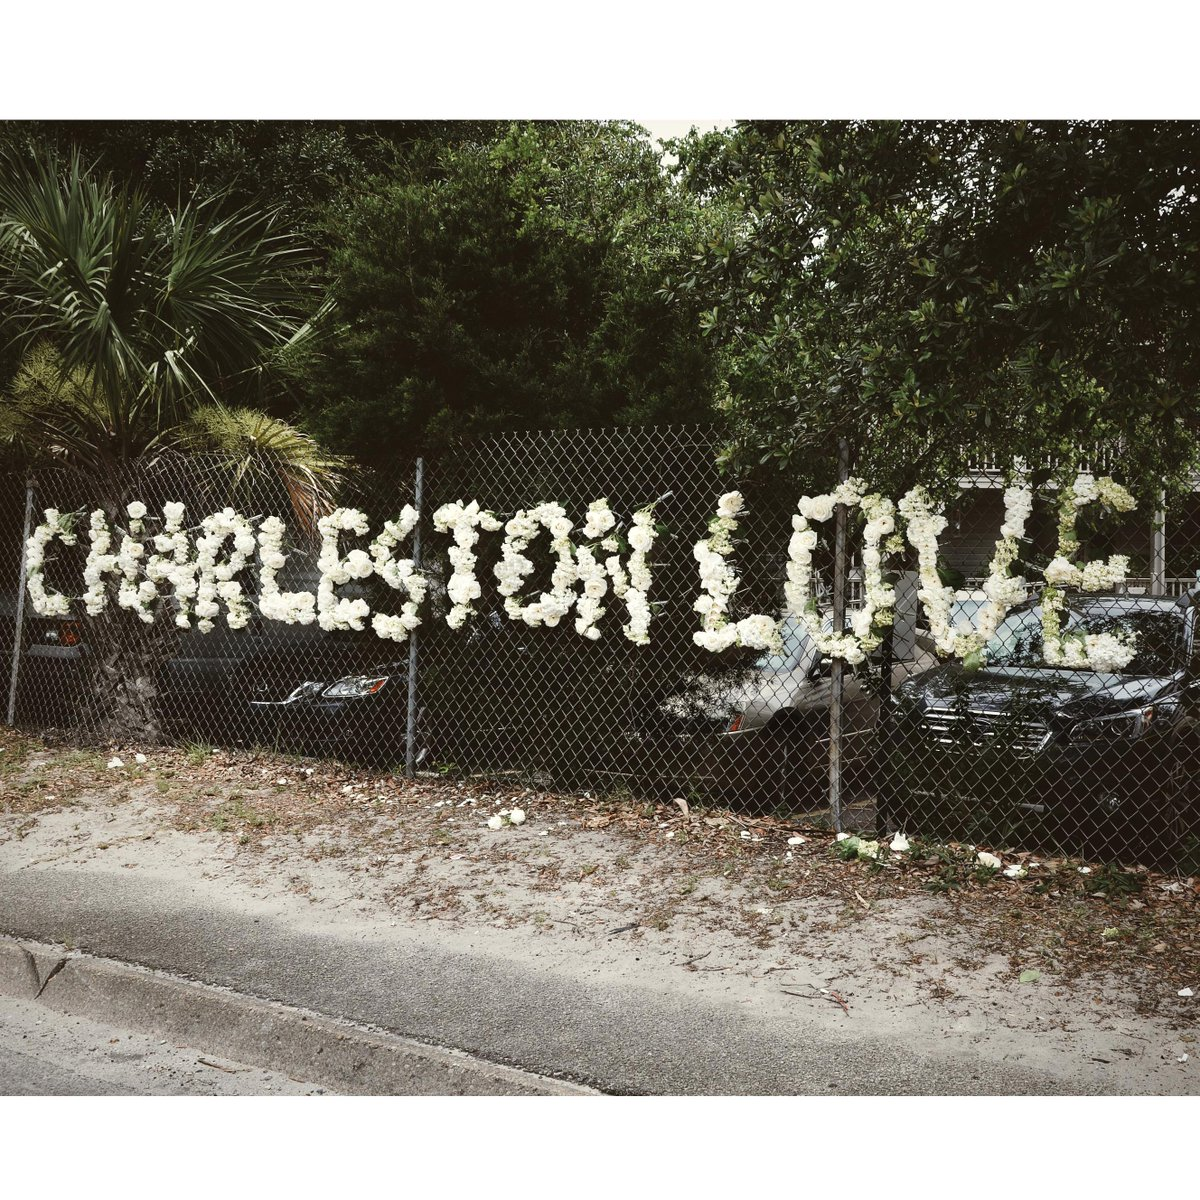 A tribute in hydrangeas on the Crosstown #charlestonlove #CharlestonStrong http://t.co/SD40V1L7Q5